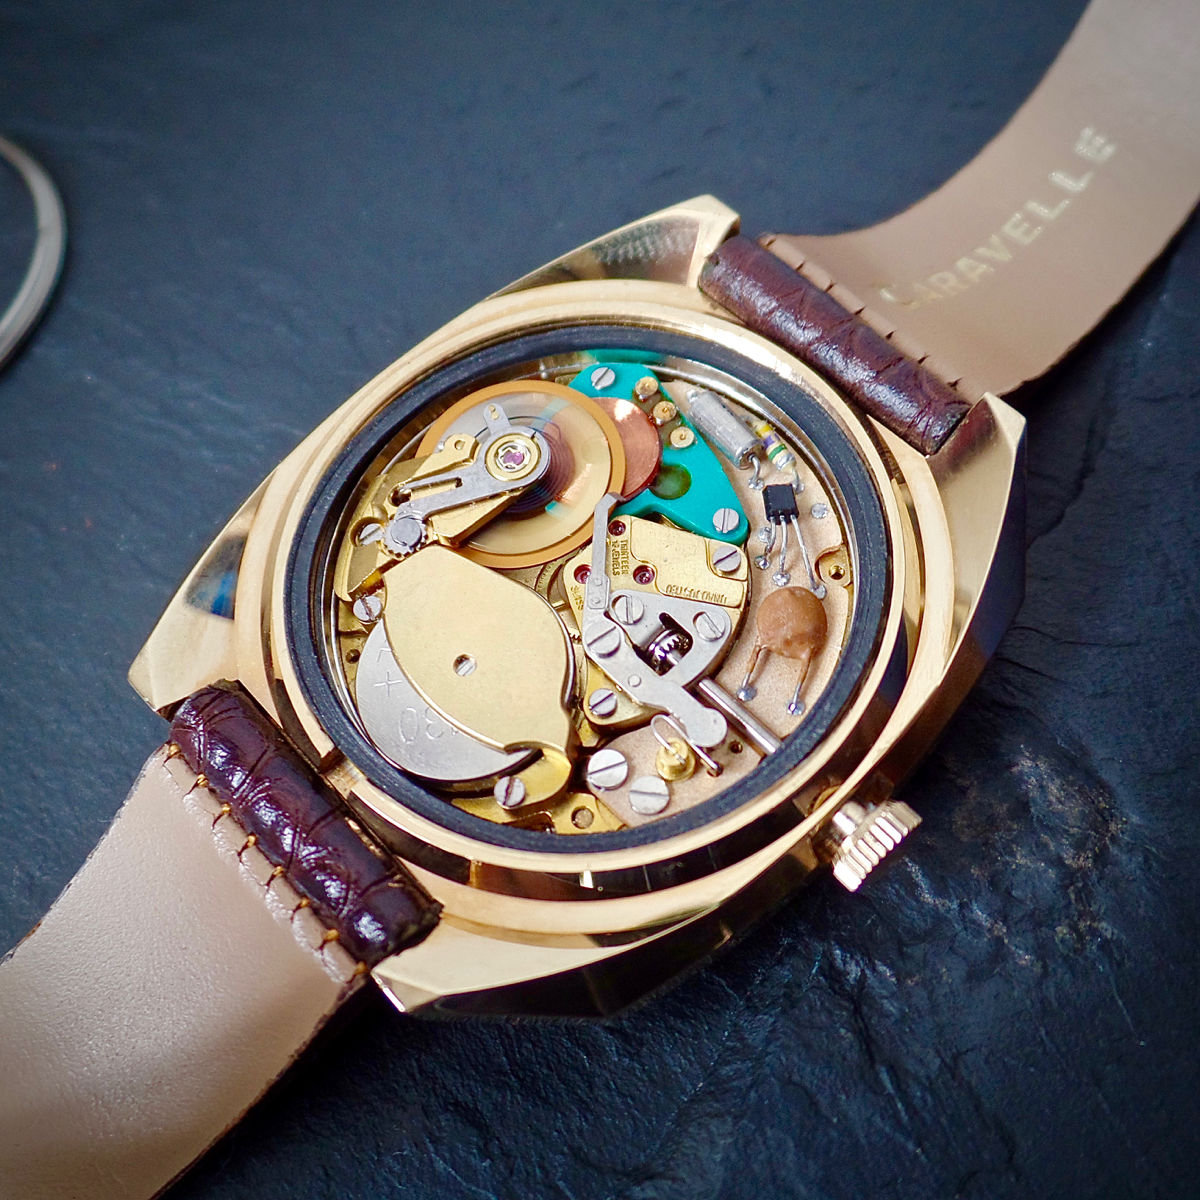 Old caravelle watches